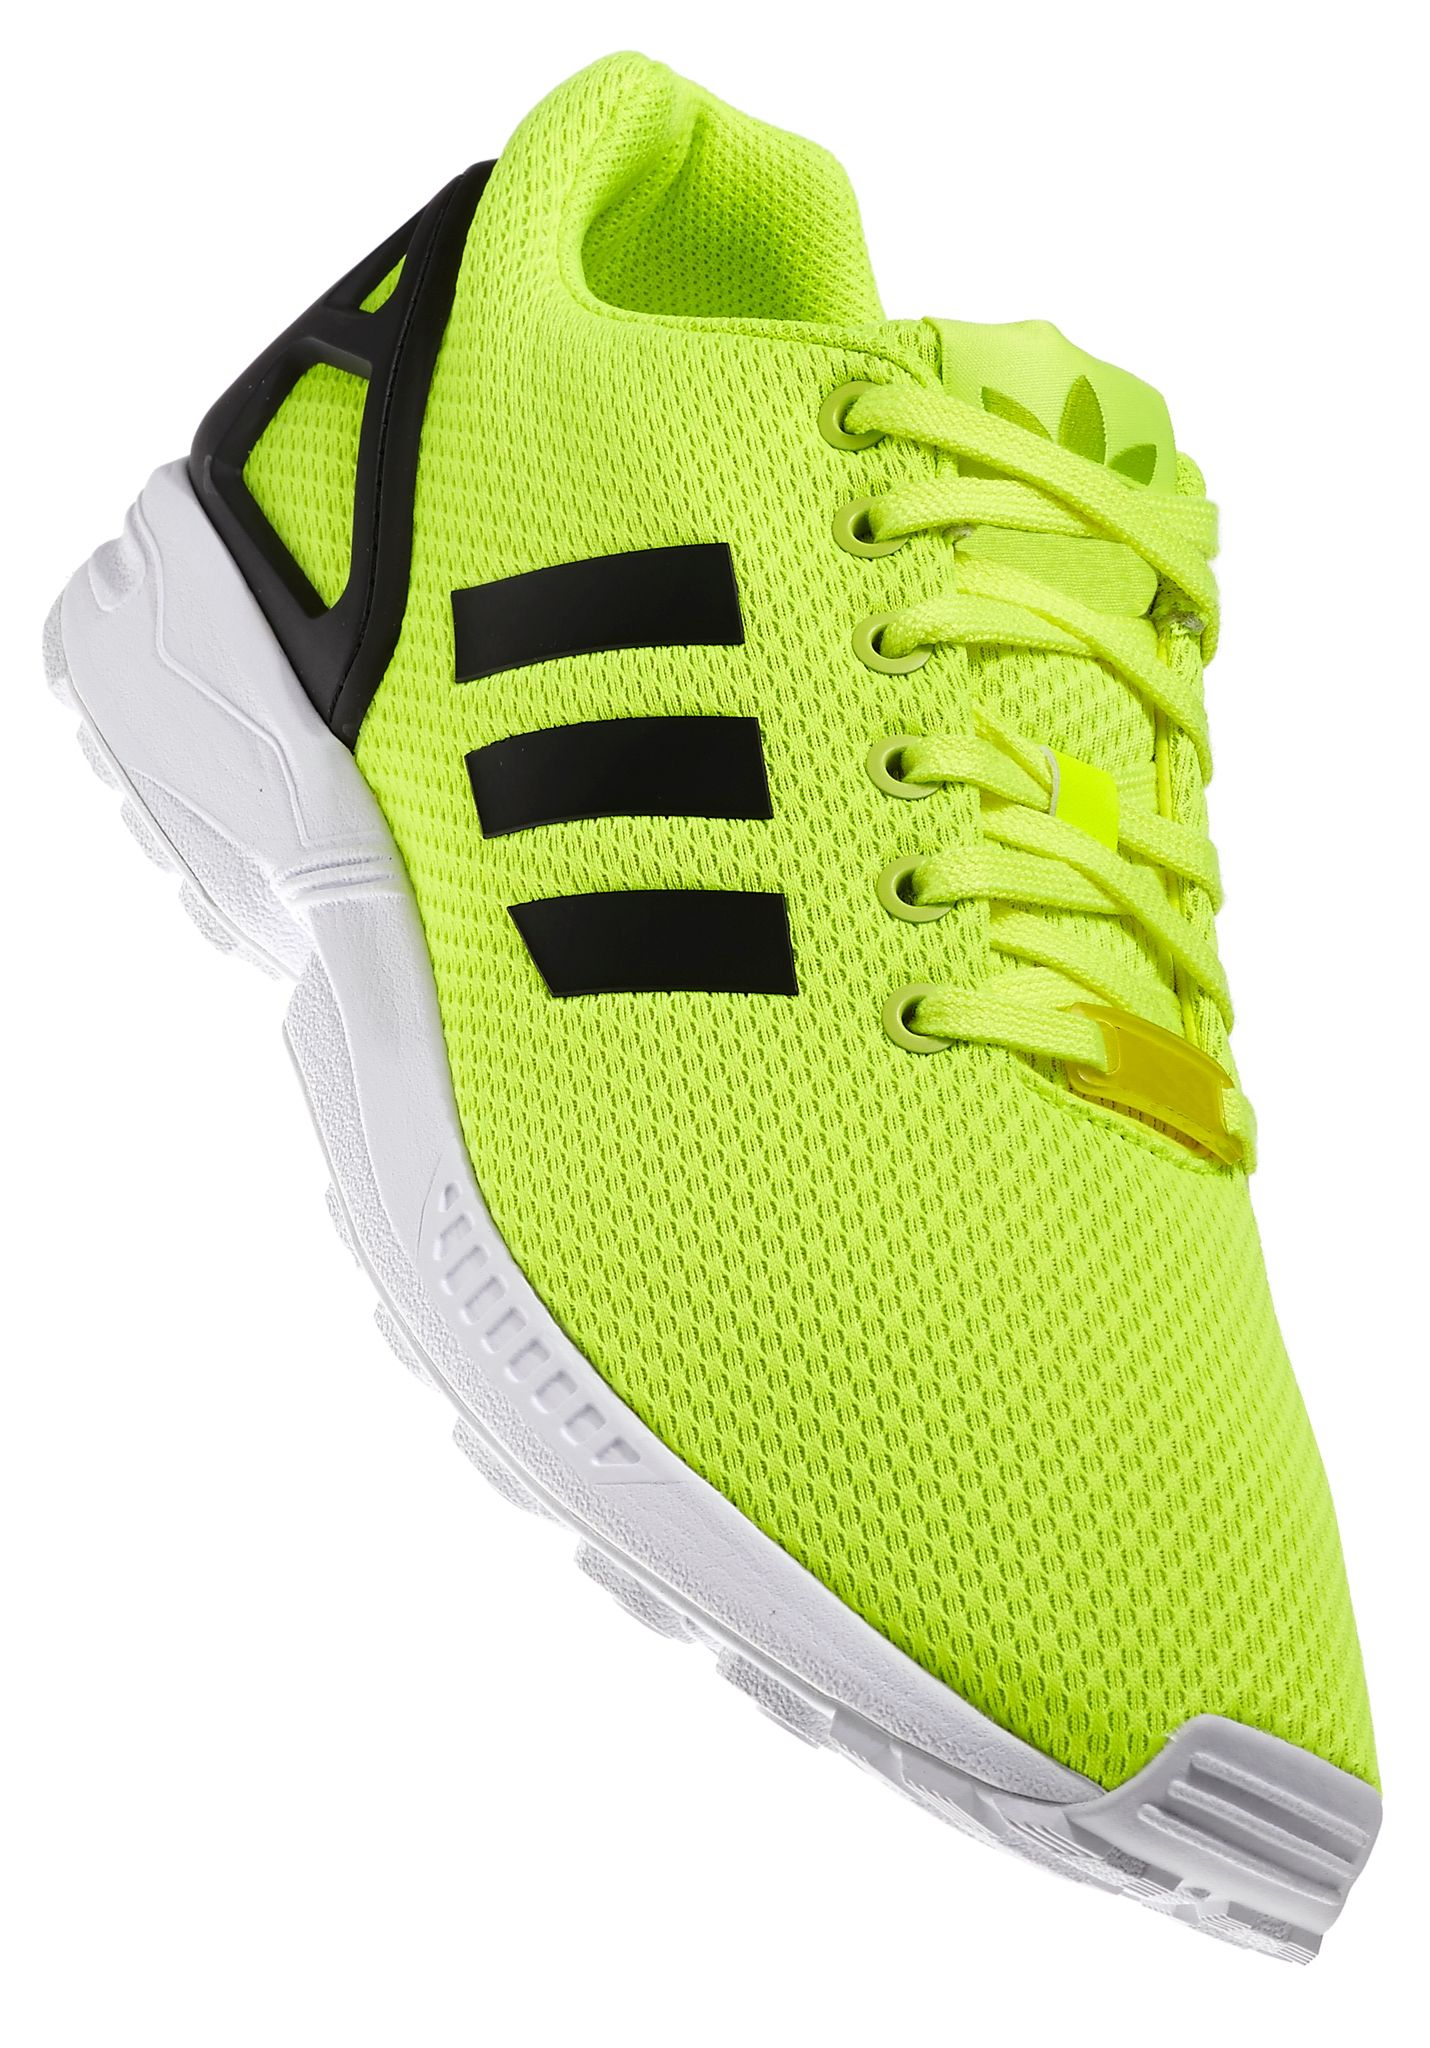 Adidas Torsion Zx Flux Grün